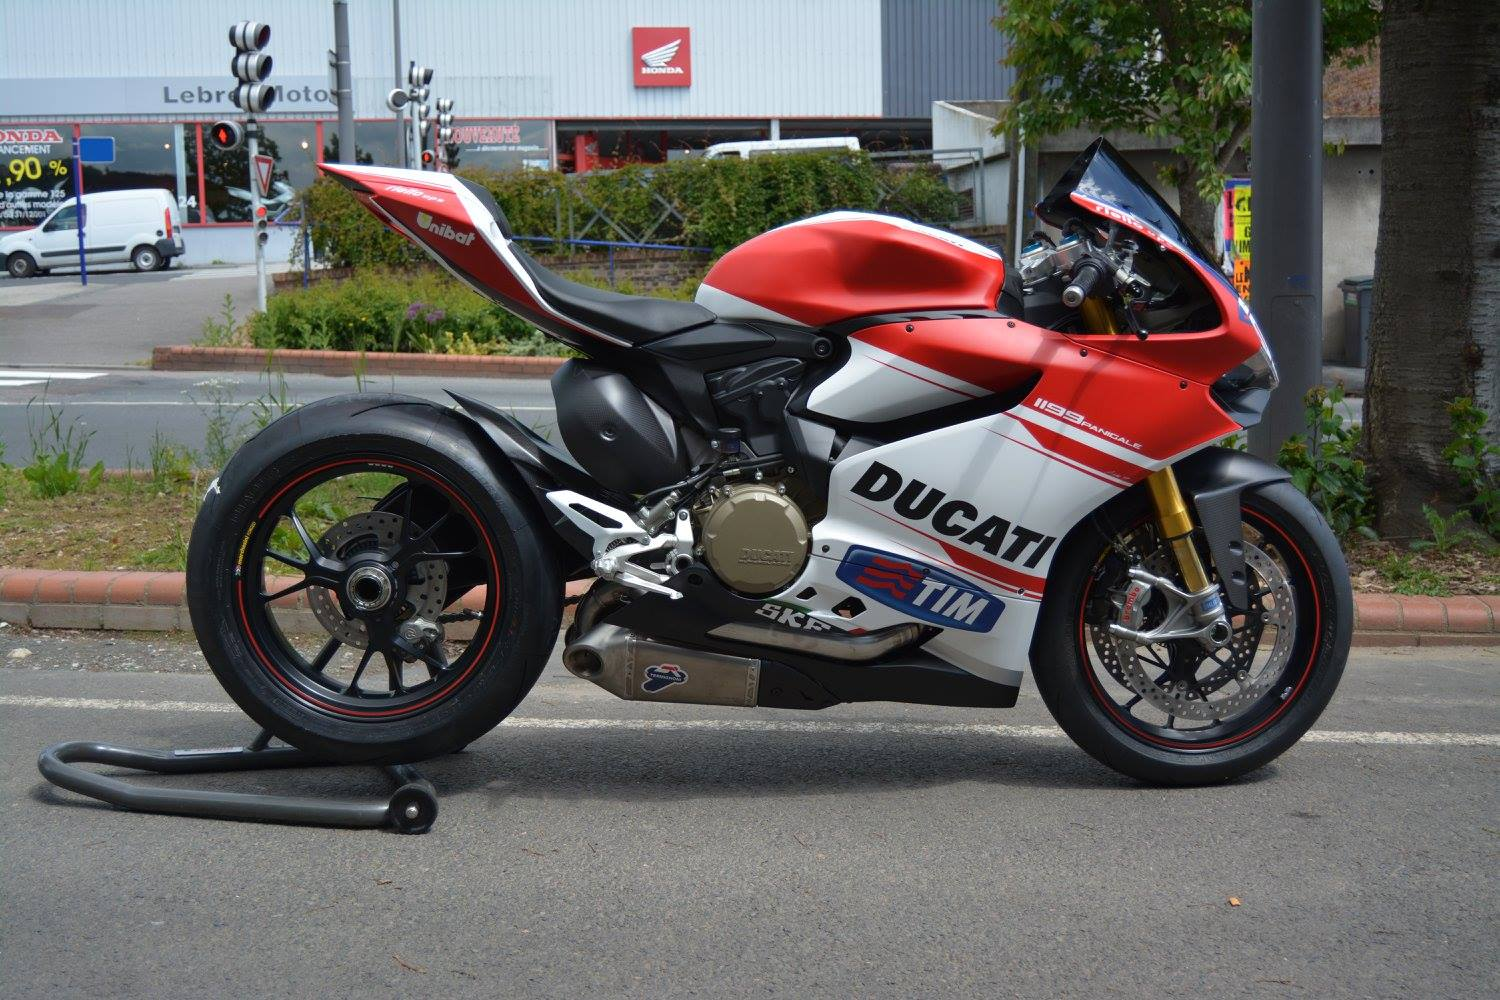 Ducati 1199 Panigale S Dovizioso Replica Is Real Bikeporn